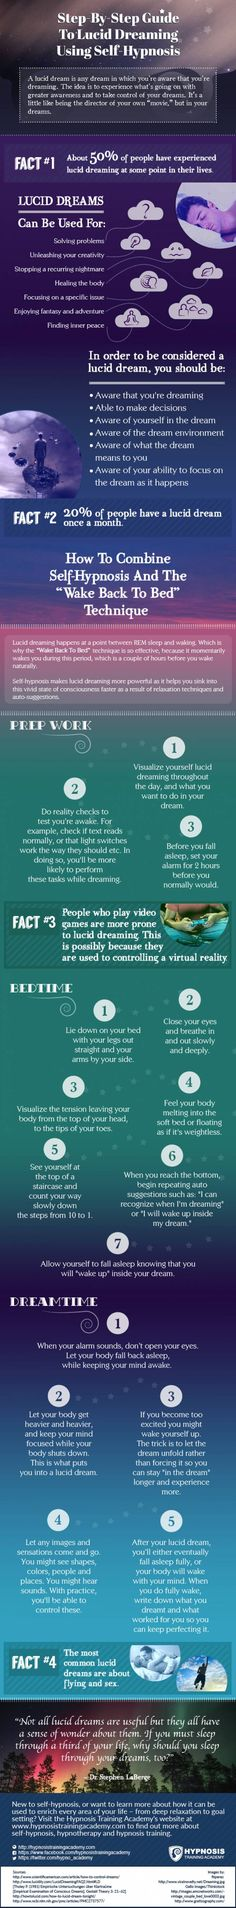 INFOGRAPHIC: The Step-By-Step Guide To Lucid Dreaming Using Self-Hypnosis